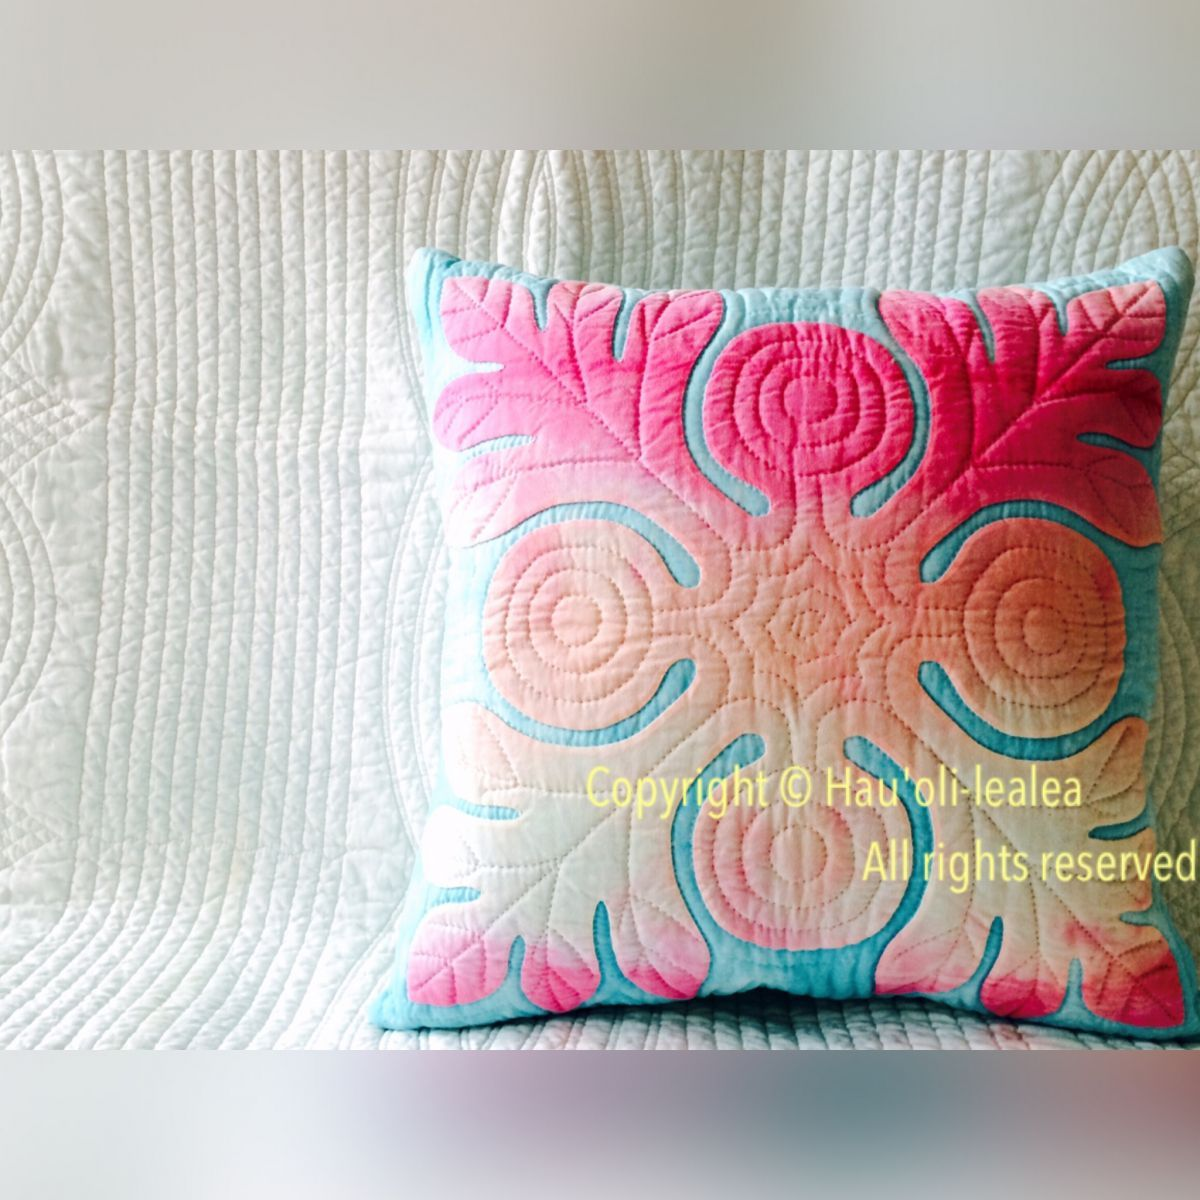 These are gorgeous! Check out the rest of her work at http://hauoli-lealea.com/